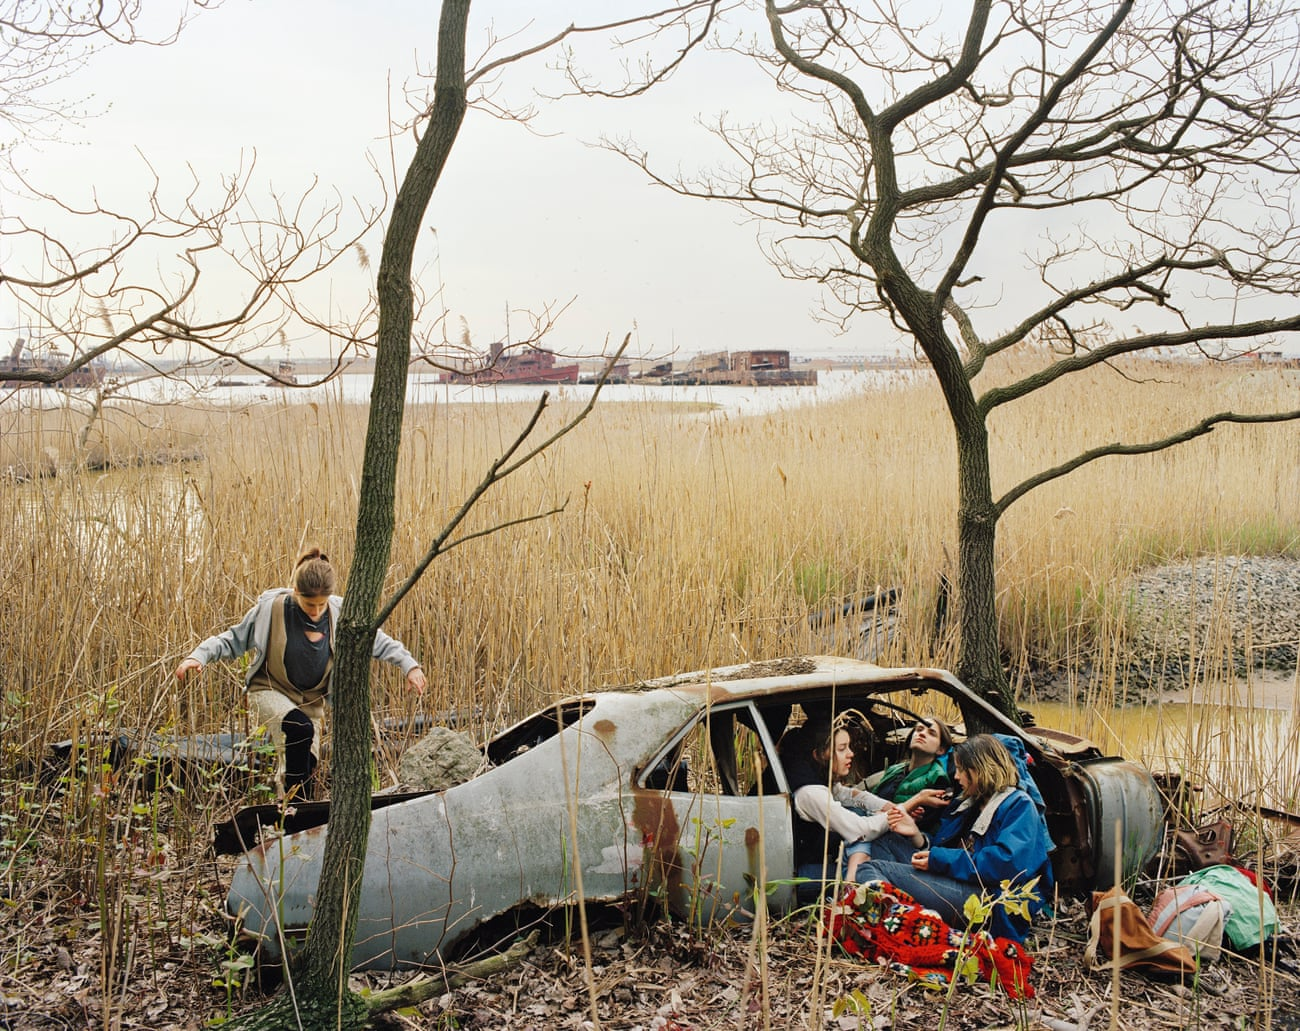 Justine Kurland And America's Young, Wild Women